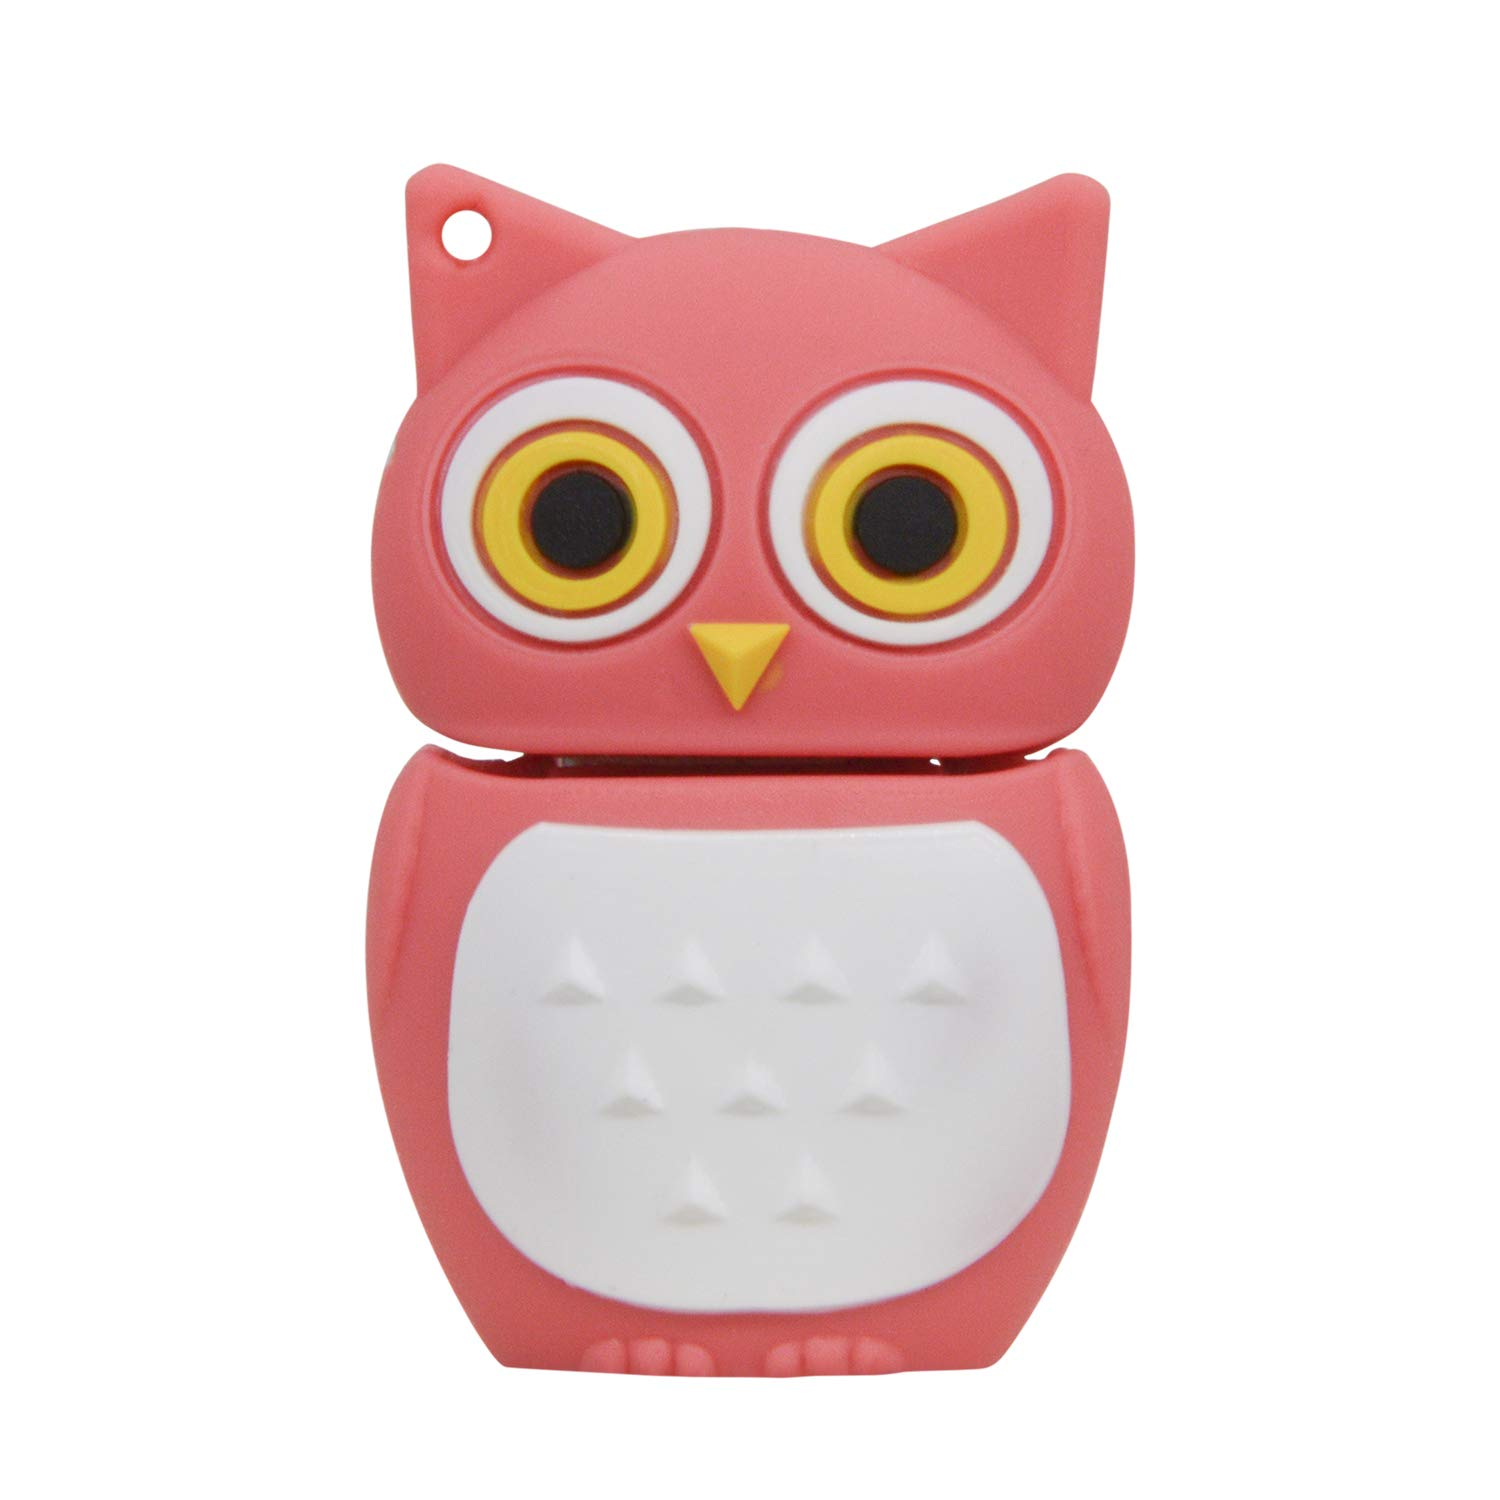 Flash Drive 8GB USB 2.0 Memory Stick - Lovely Pink Owl Pendrive Data Storage - Data Storage Thumb Drive Gift for Family Employees Friends by FEBNISCTE